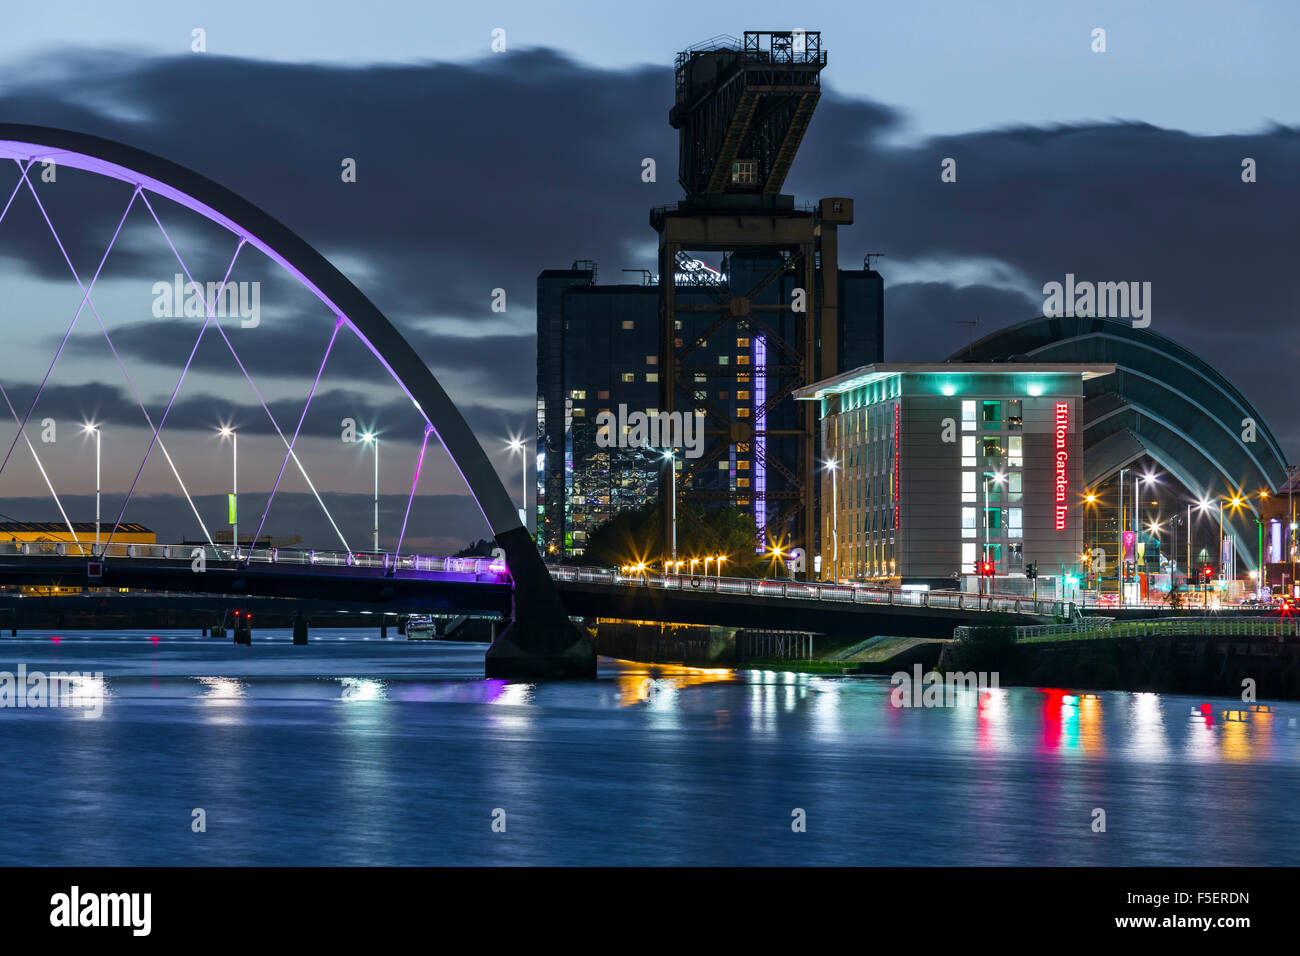 The Finnieston waterfront beside the River Clyde in Glasgow at dusk, Scotland, UK - Stock Image